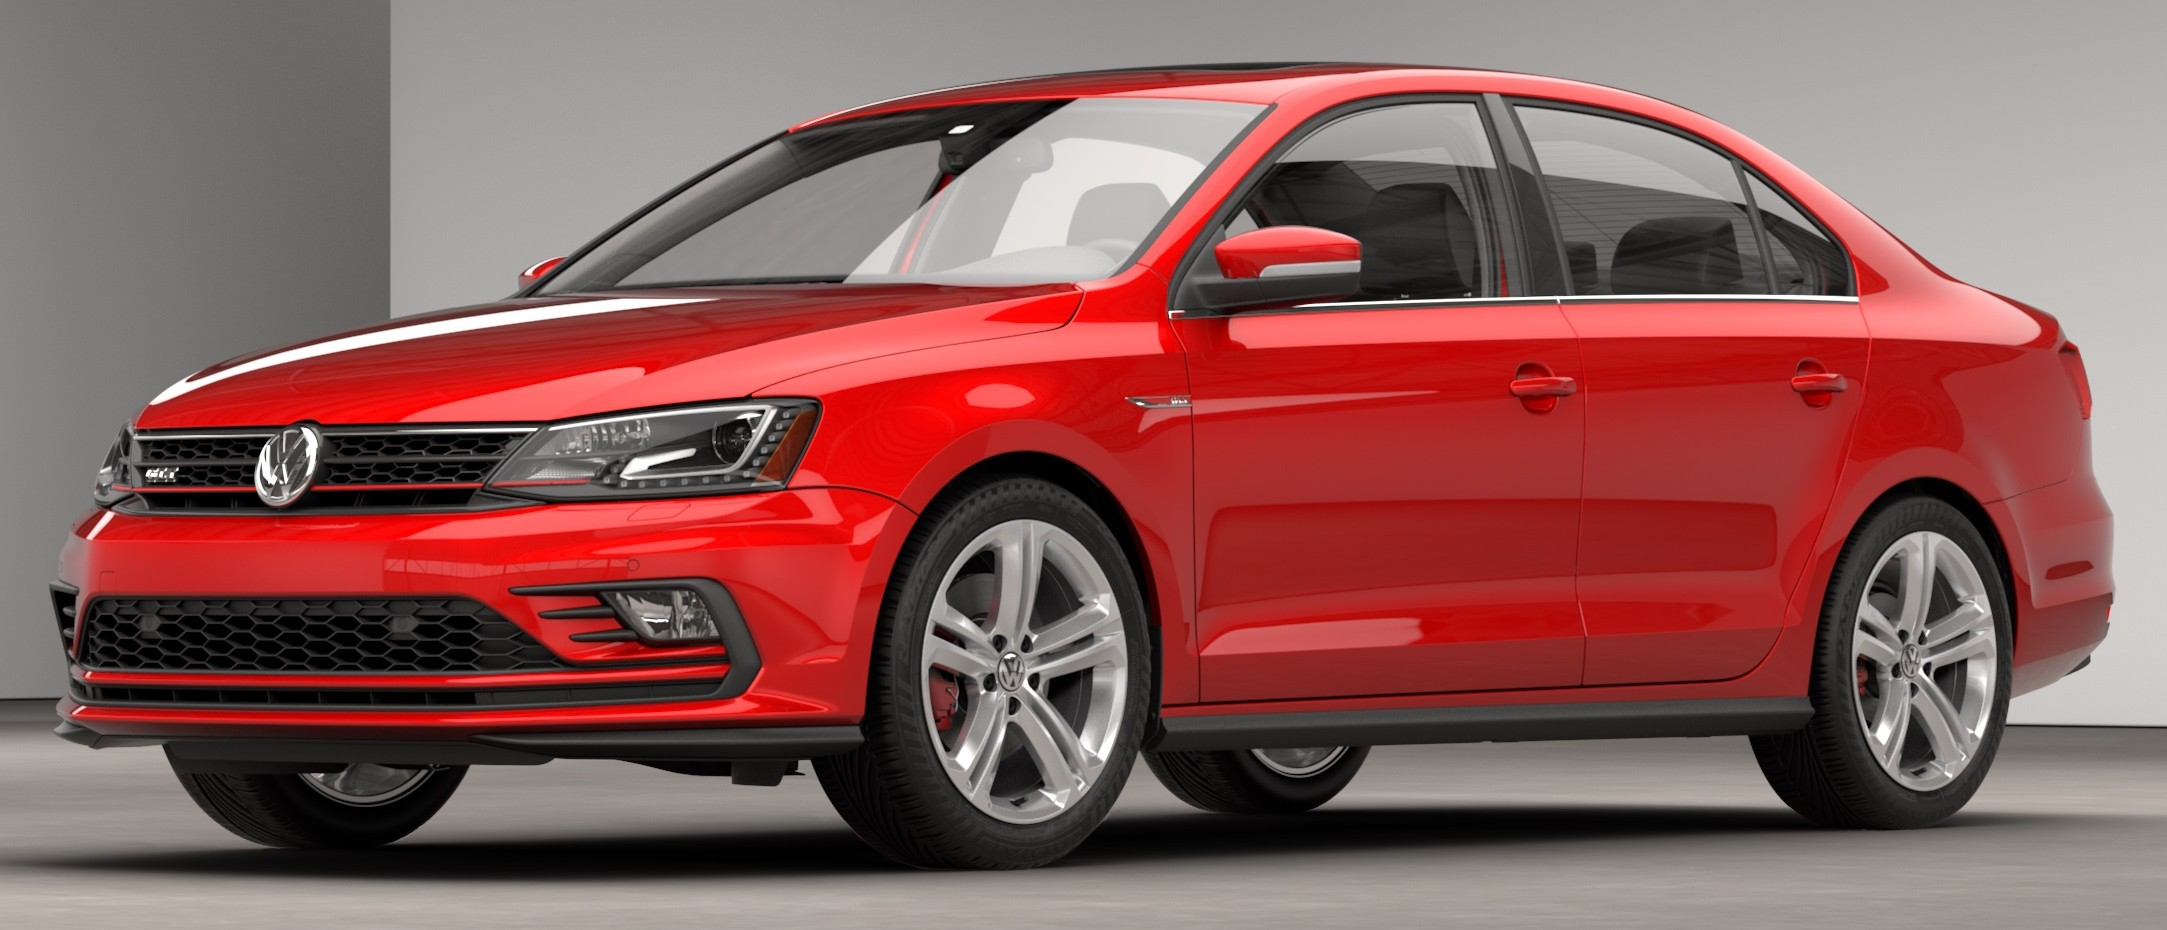 2016 Volkswagen Jetta GLI sports new face, more tech